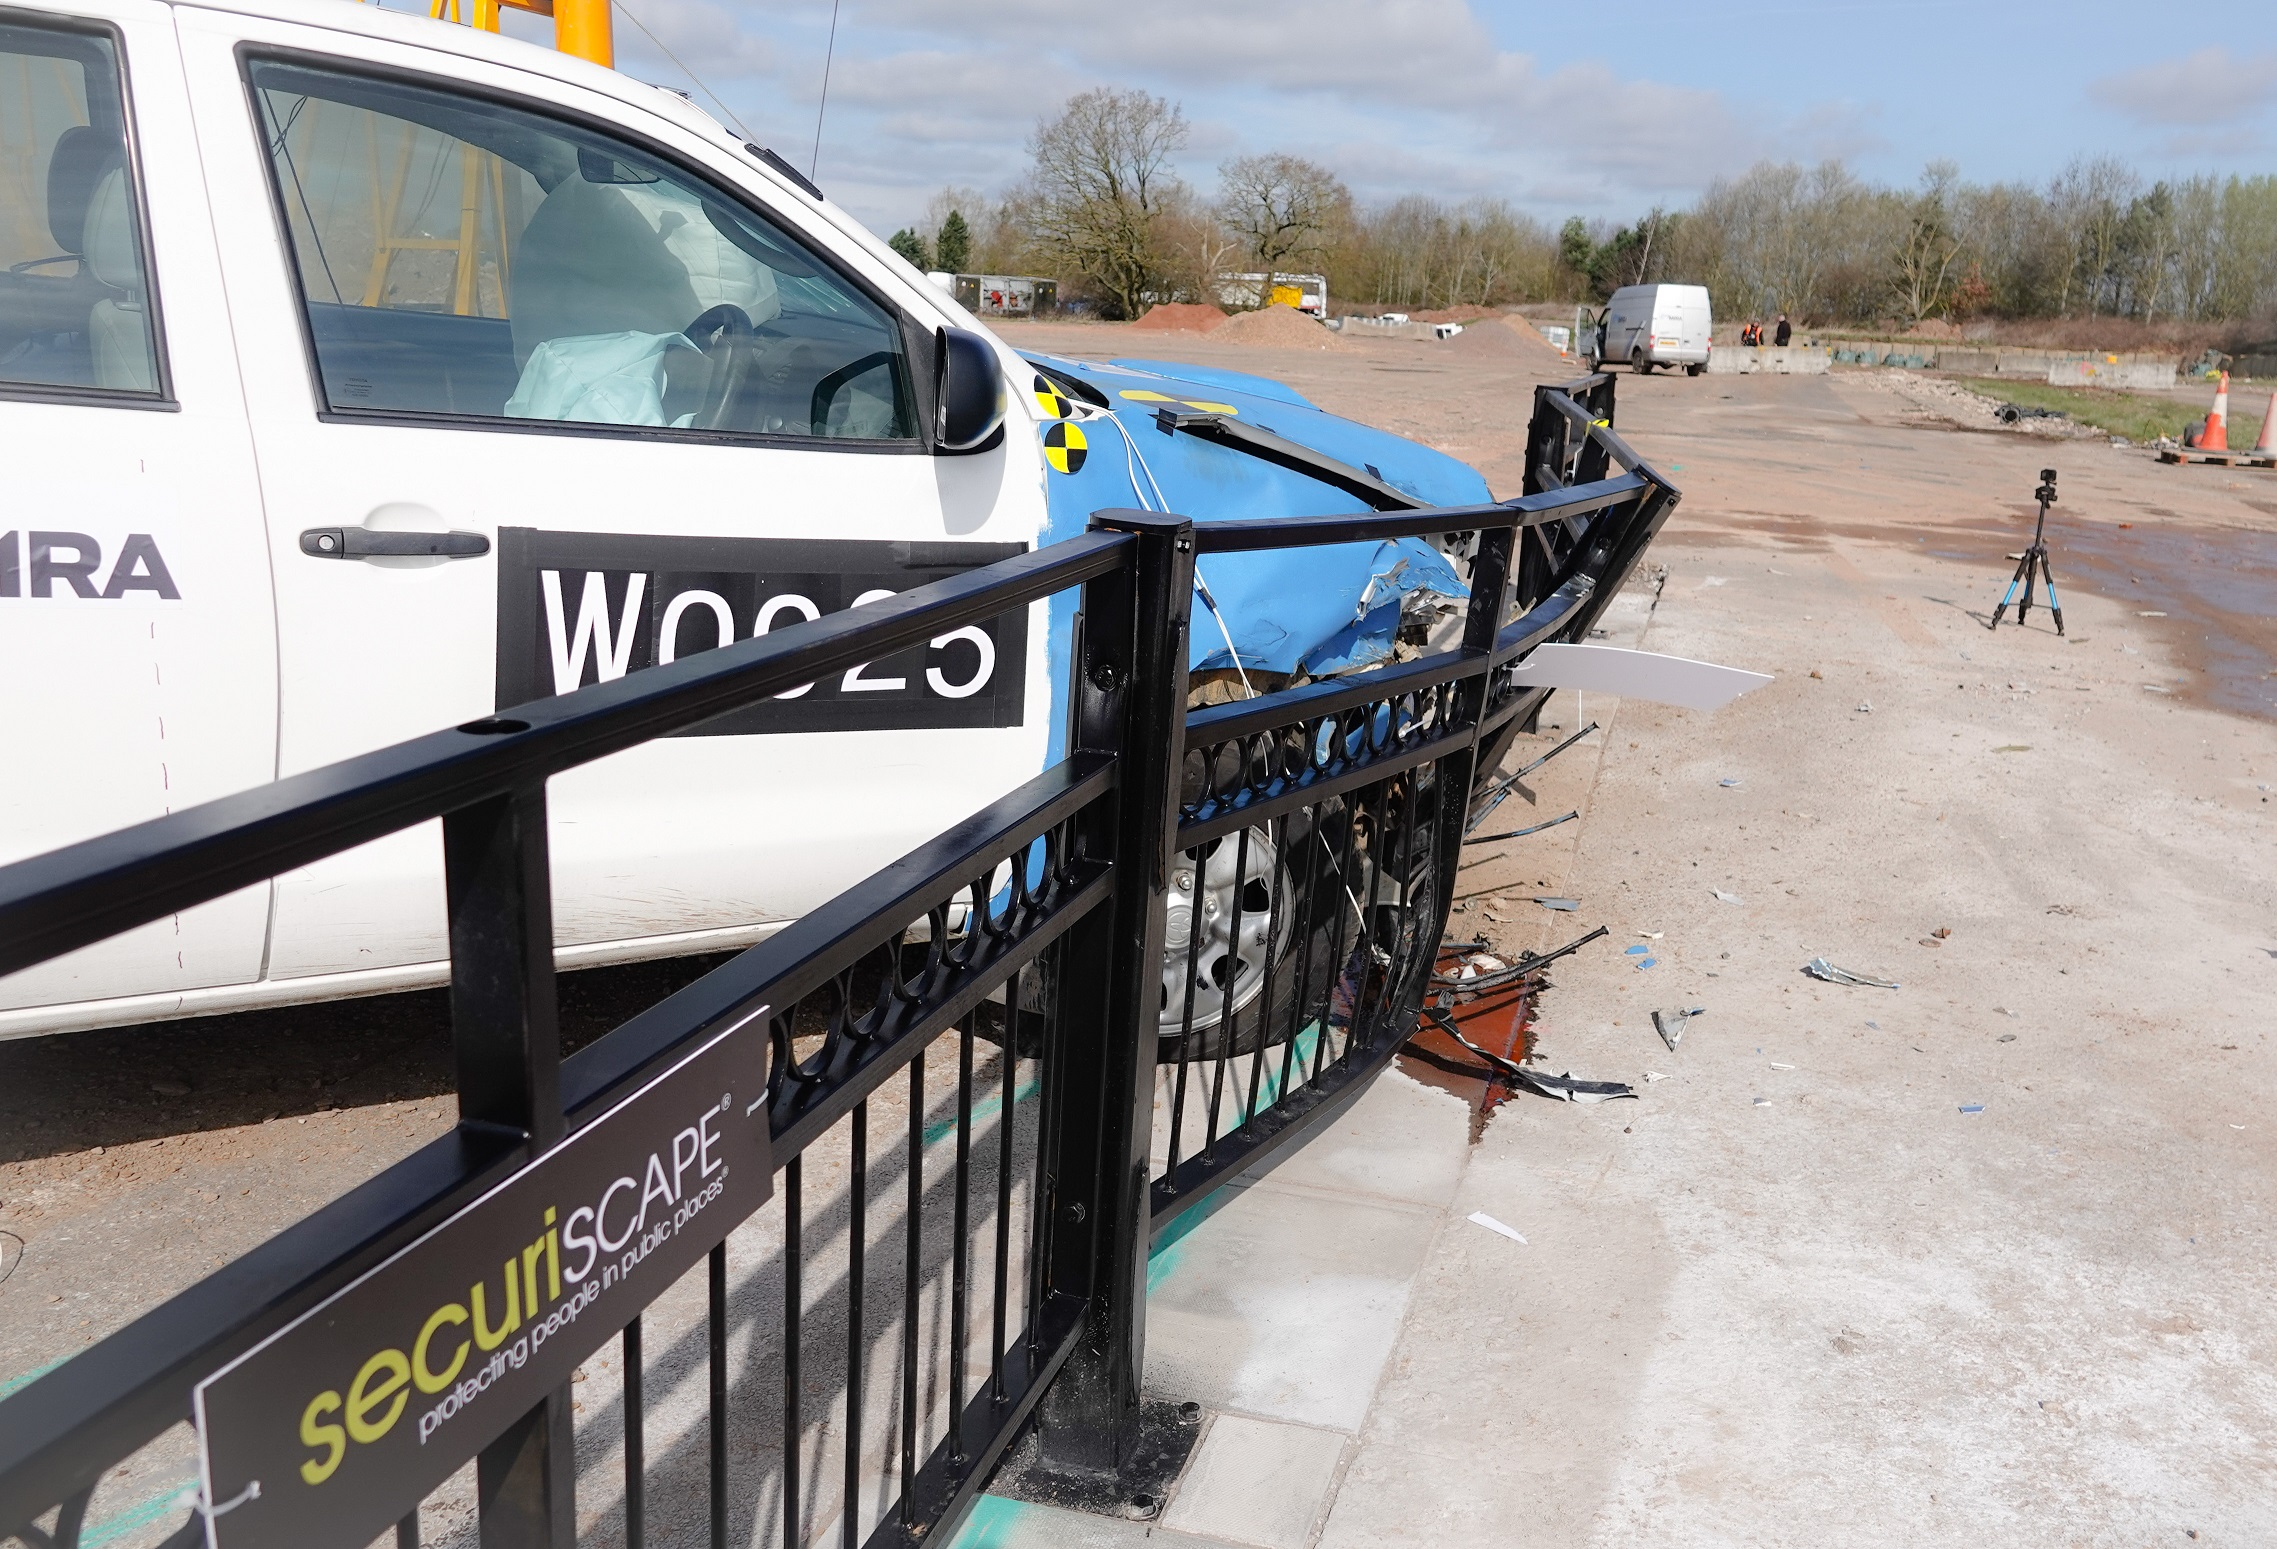 Securiscape's HVM Socketed Guardrail earned its IWA-14 rating after it stood firm when deliberately rammed by a 2.5 tonne 4WD pick-up travelling at 30mph during the test at MIRA. Penguin PR: public relations, media and communications